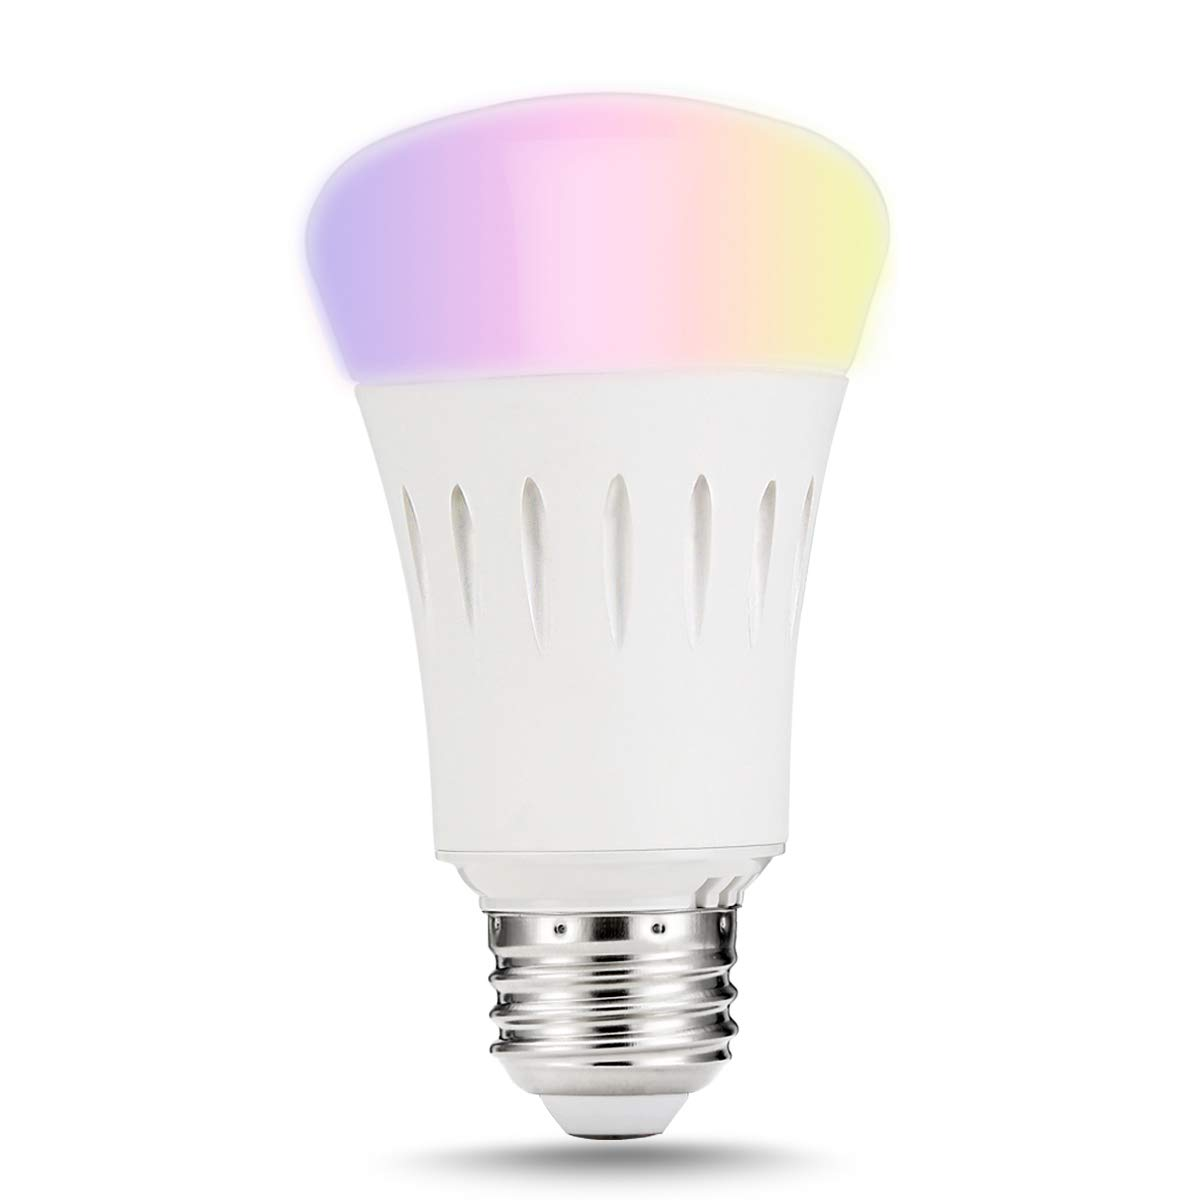 Lohas Smart Led Bulb Wi Fi Light Multicolored Bulbsul Listed Wiring Diagram For Dual Bars Free Download A19 Dimmable 60w Equivalent9w Smartphone Controlled Daylight Night